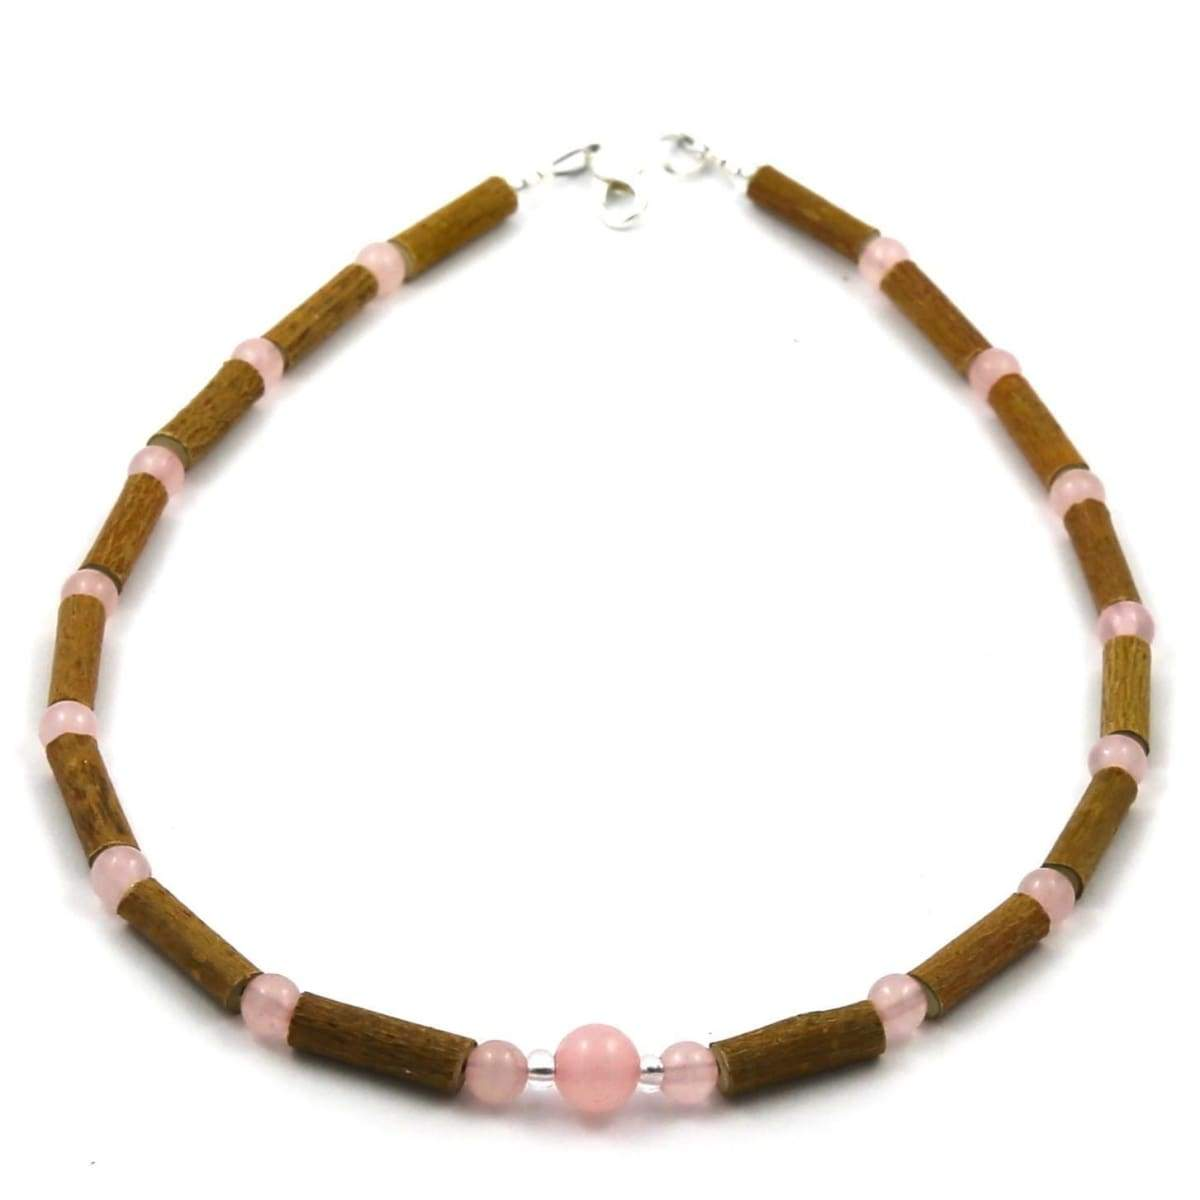 Hazel-Gemstone Rose Quartz - 11 Necklace - Lobster Claw Clasp - Hazelwood & Gemstone Jewelry